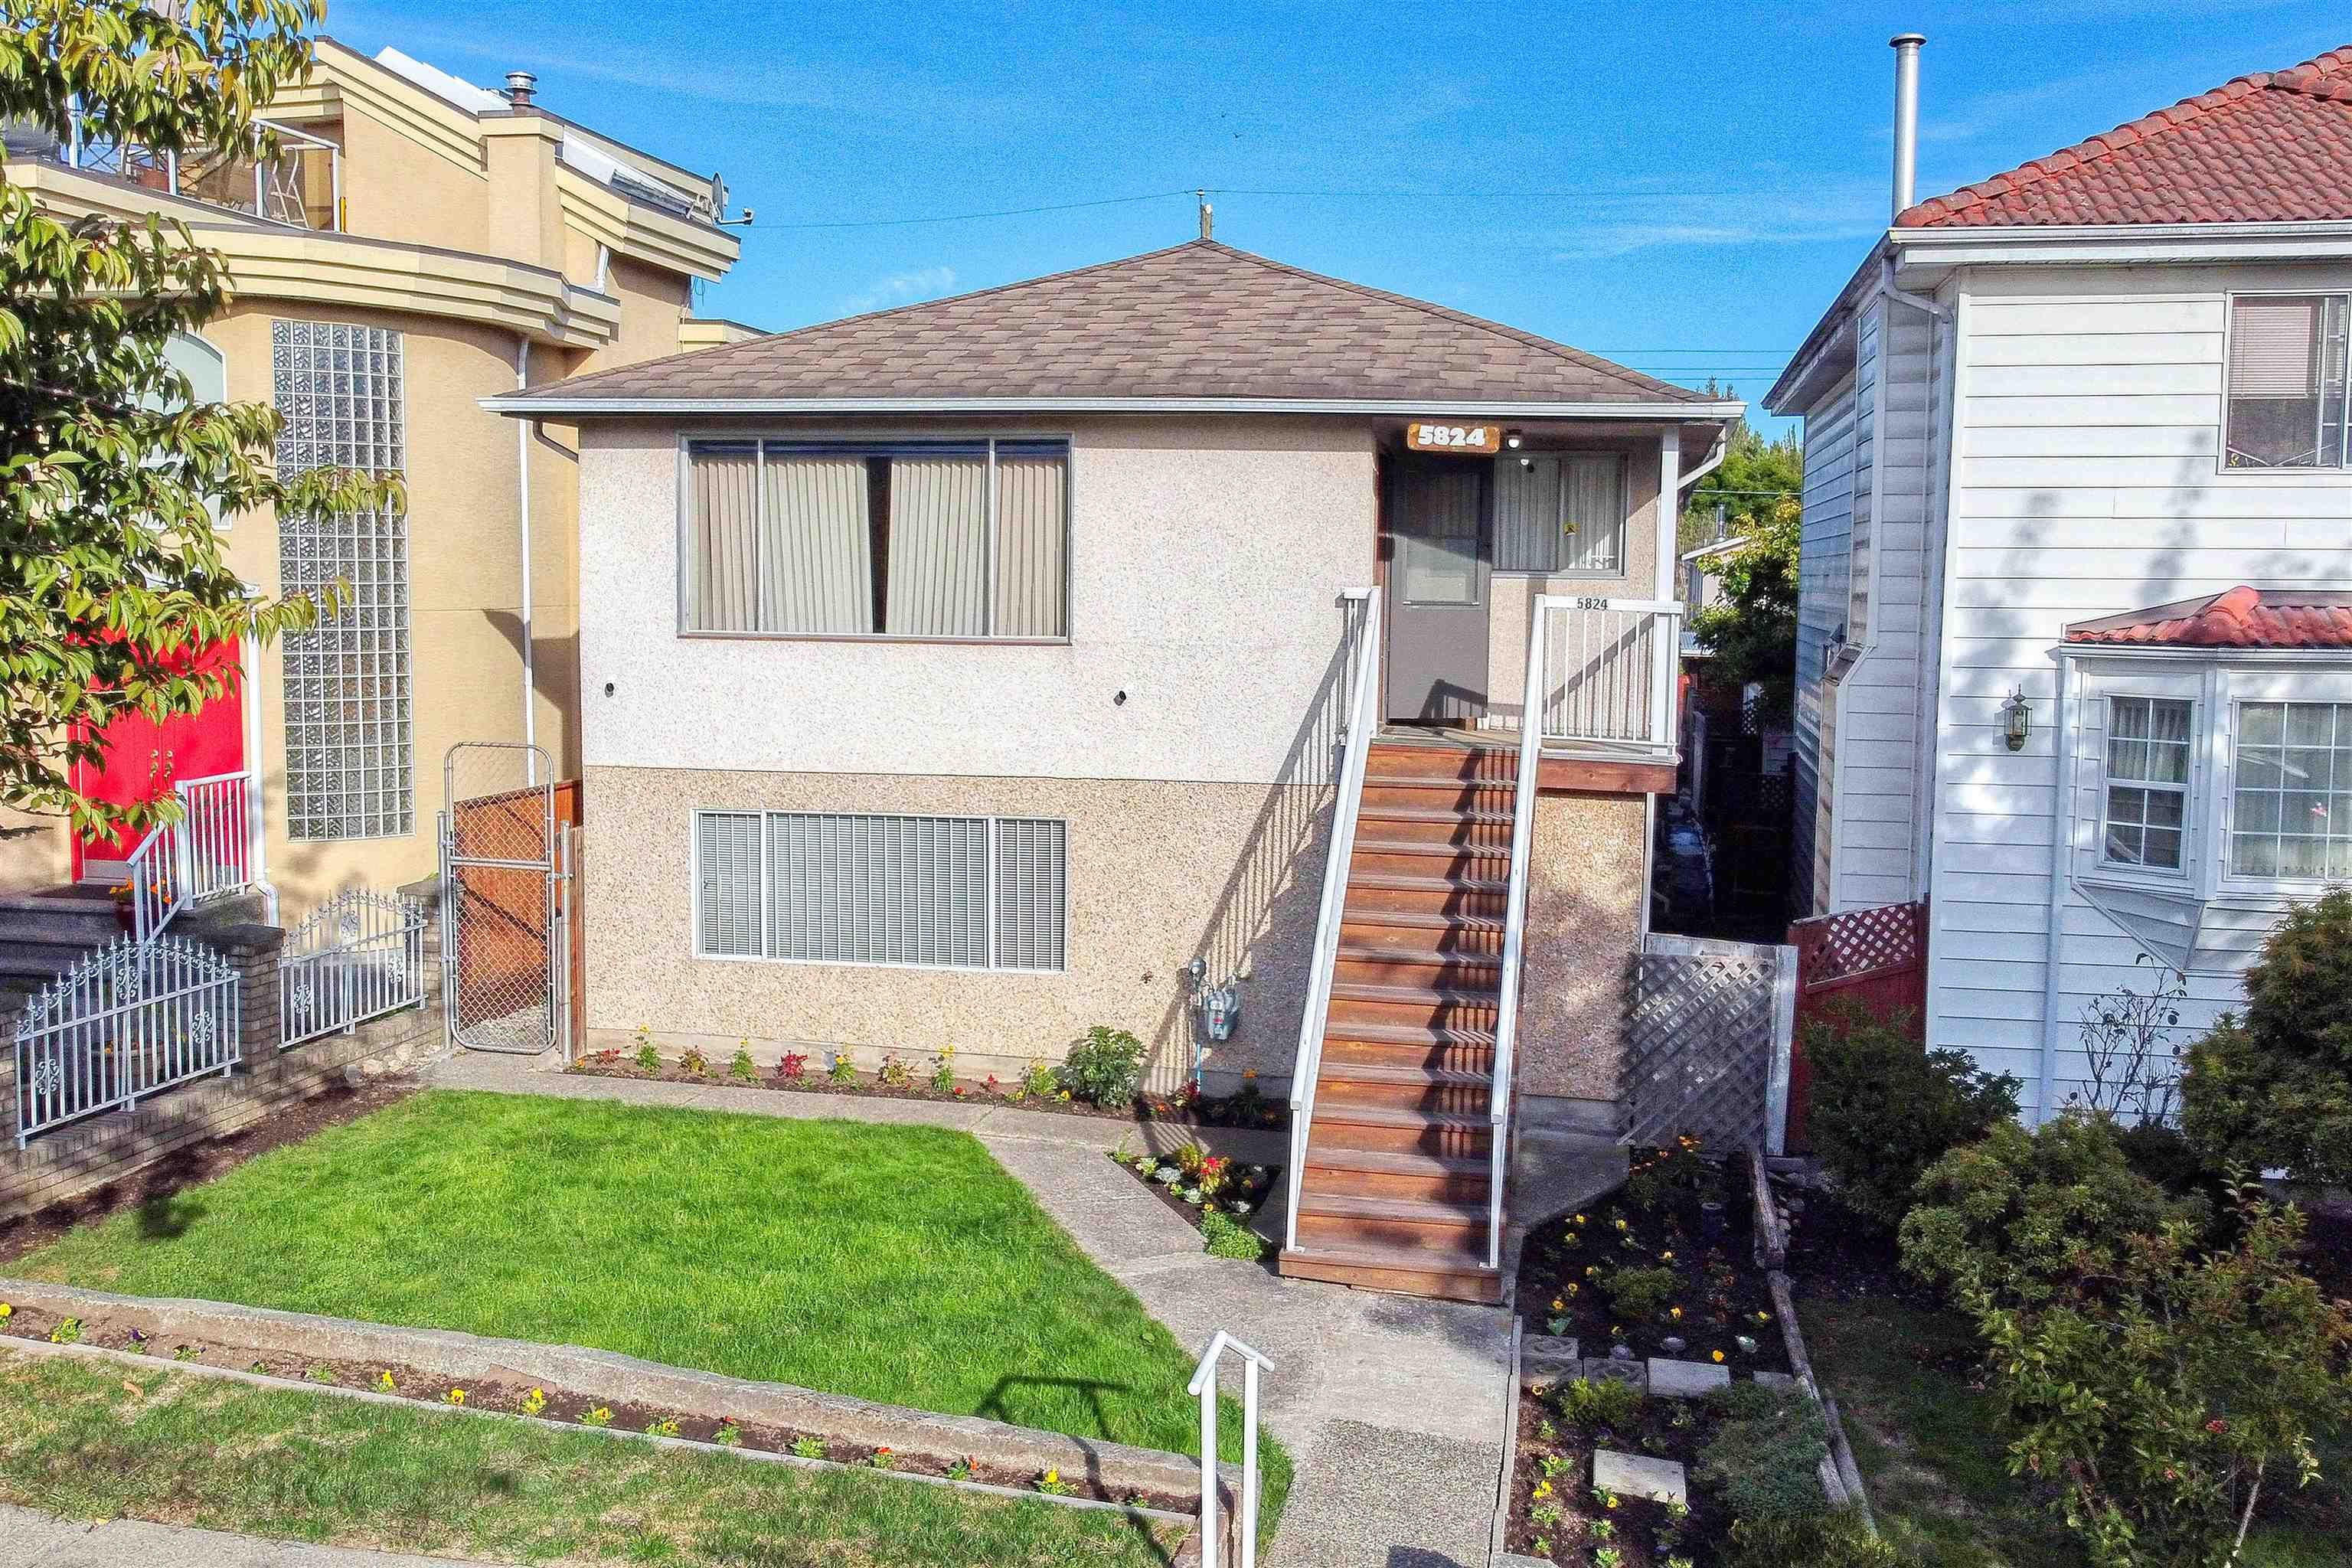 Main Photo: 5824 INVERNESS Street in Vancouver: Knight House for sale (Vancouver East)  : MLS®# R2621157